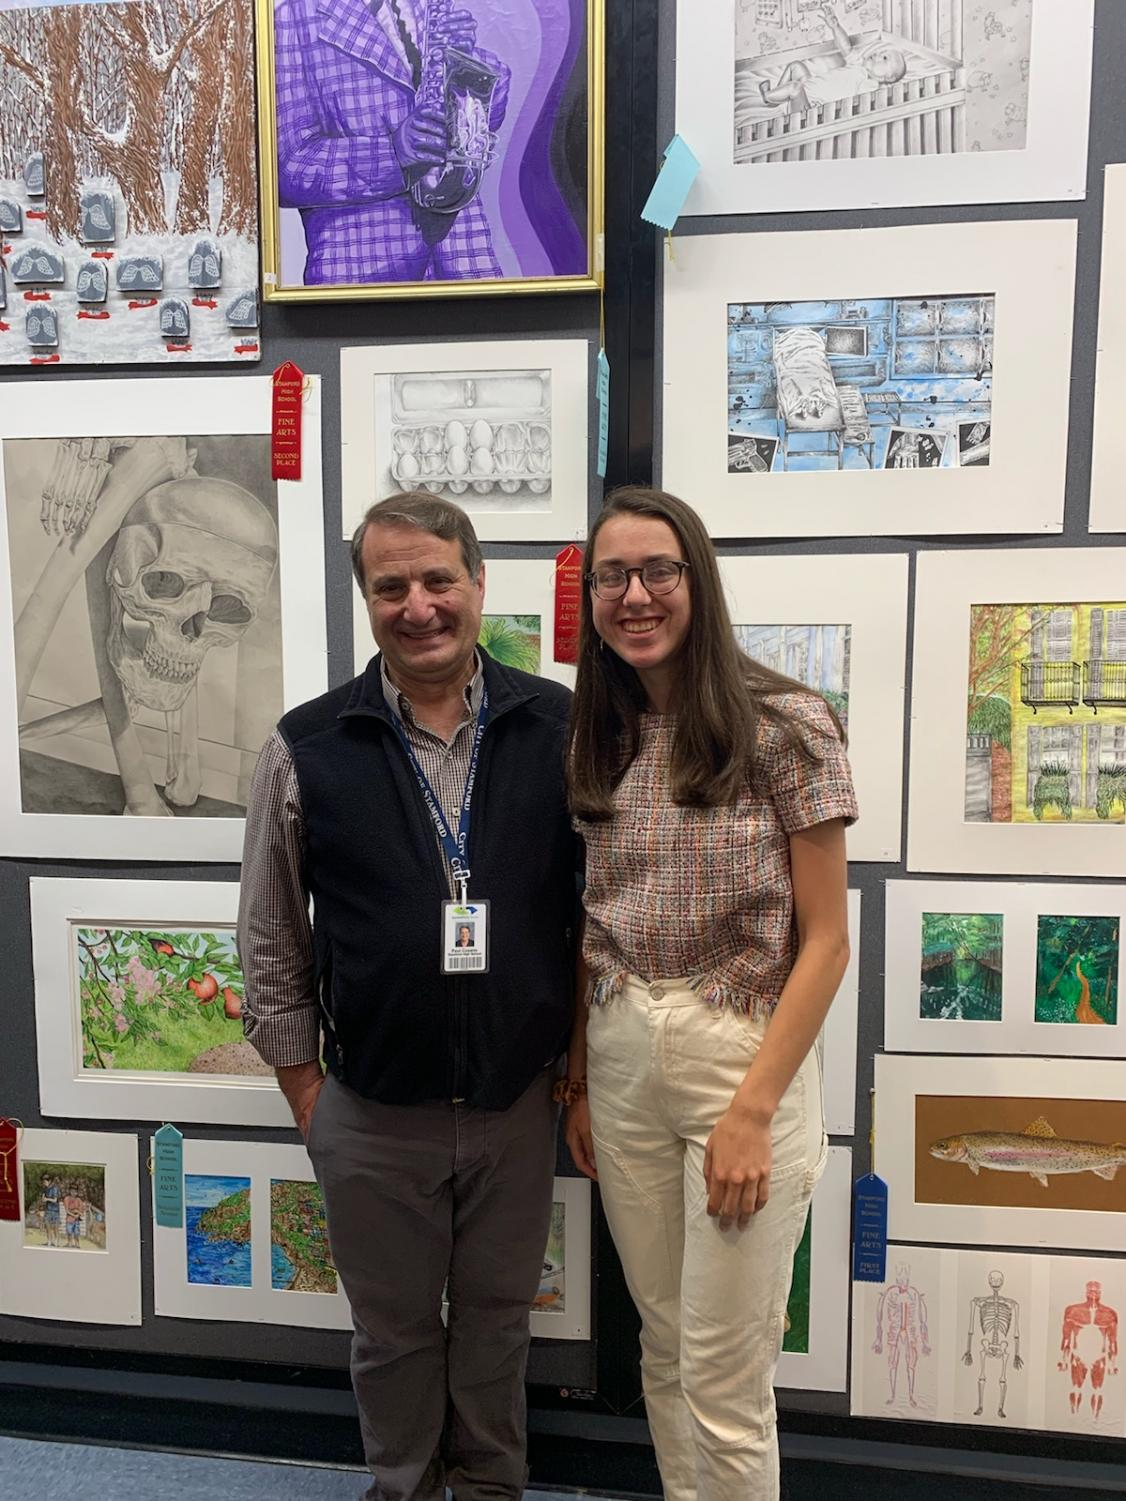 Mr. Cusano with student, Ivy Zingone infront of artwork.